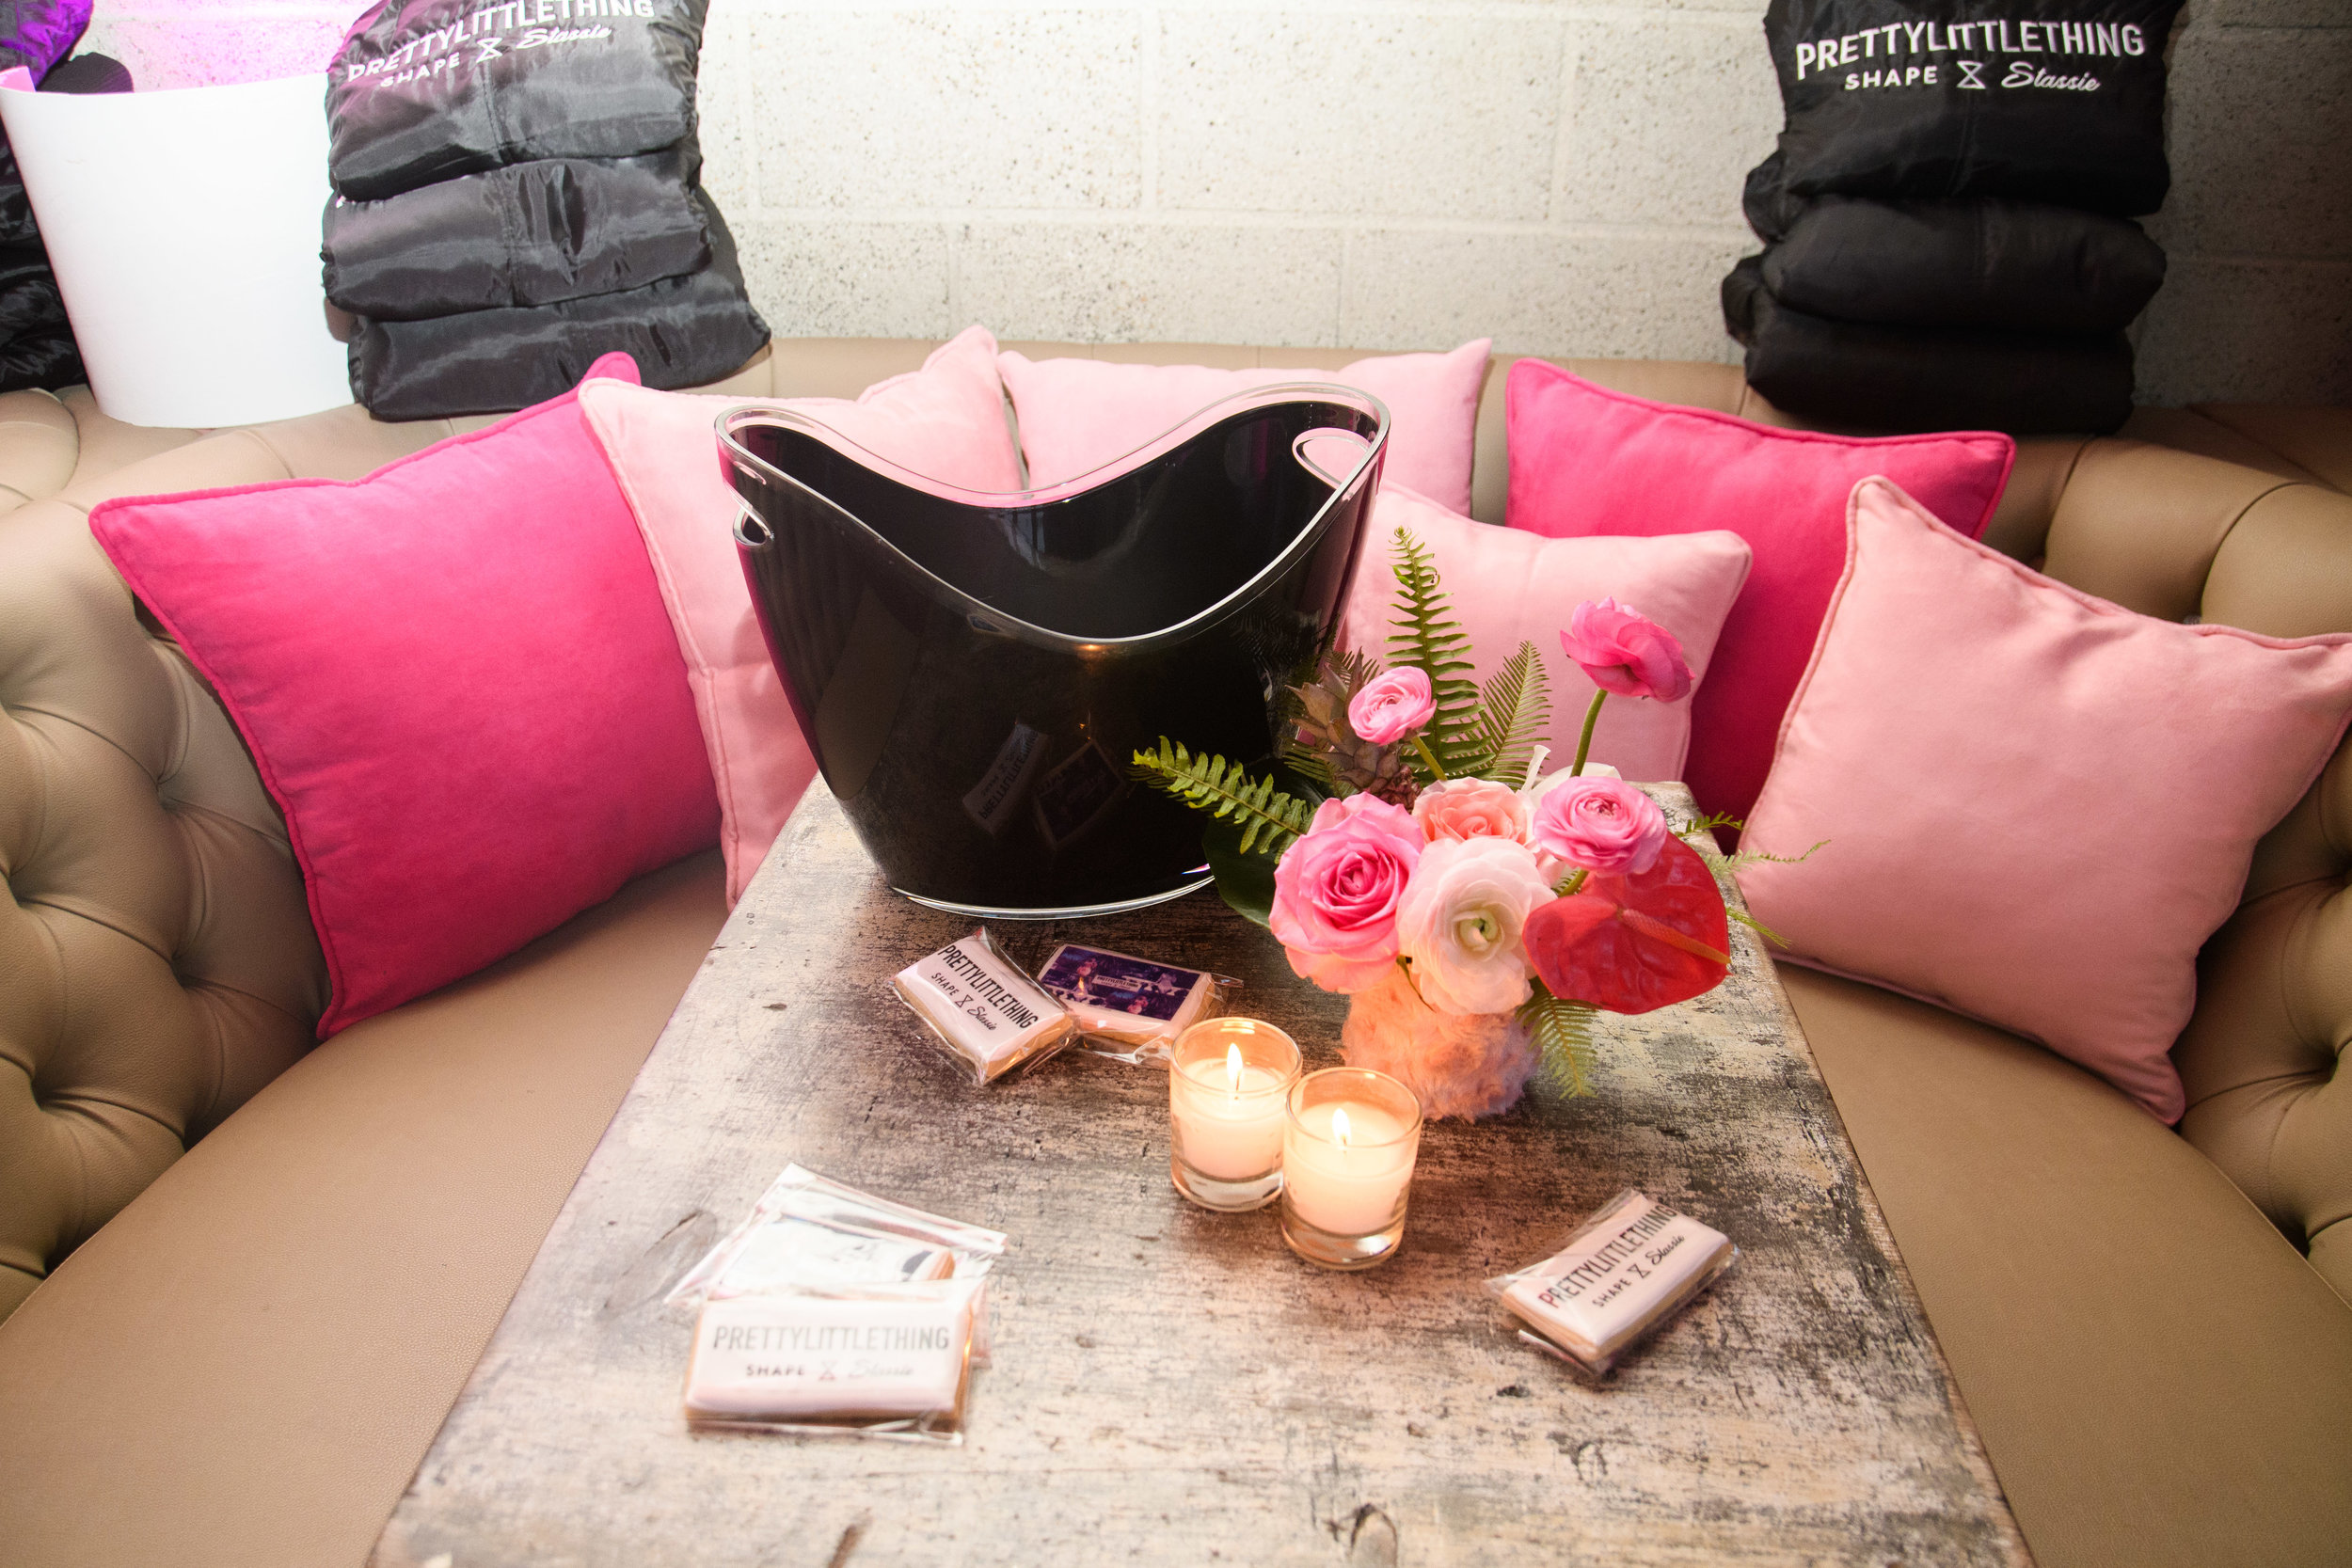 PrettyLittleThing New PLT Shape Collection with Stassie Celebrity Launch Party black laquer ice bucket on the table and pretty pink pillows on the bench.jpg